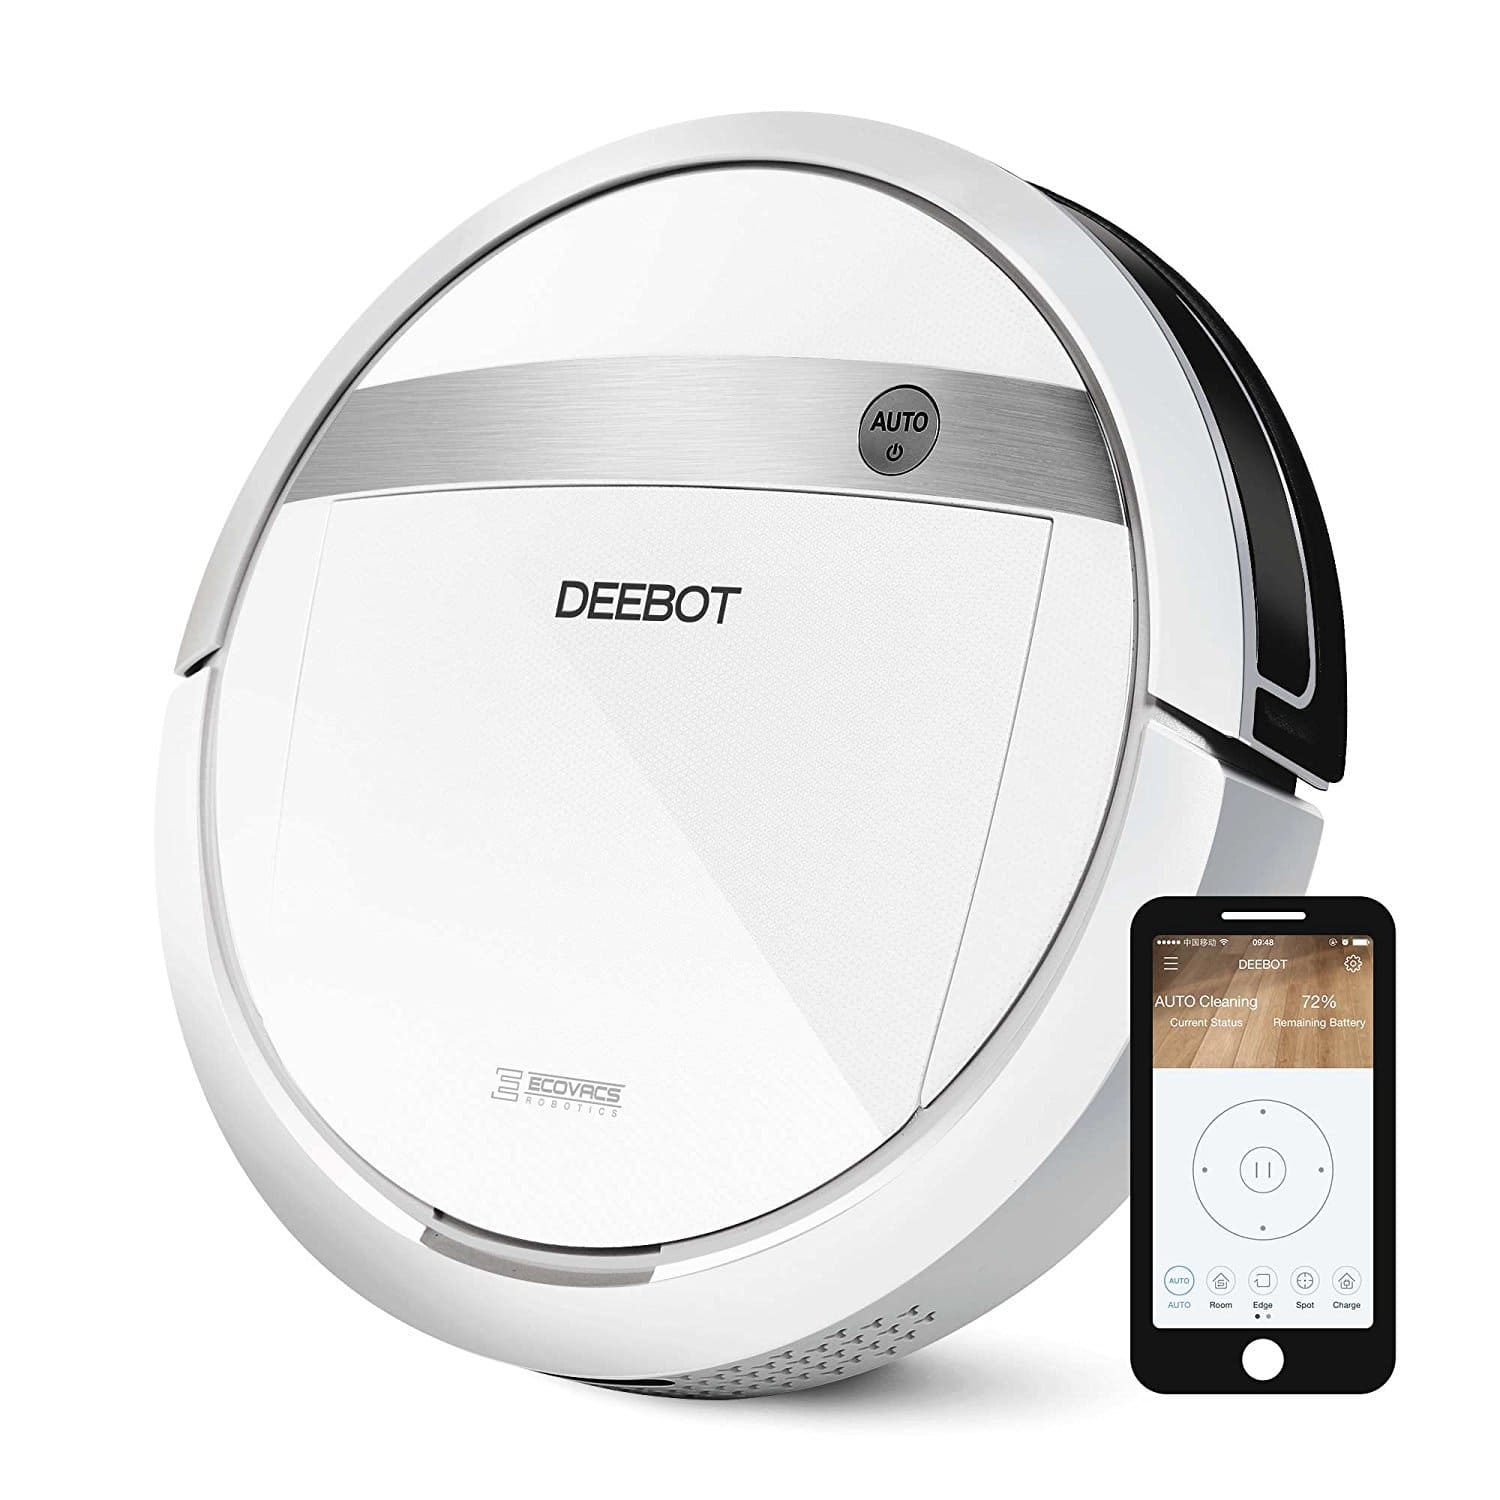 ECOVACS DEEBOT M88 Robotic Vacuum Cleaner $249 Shipped @ Amazon Deal Of The Day